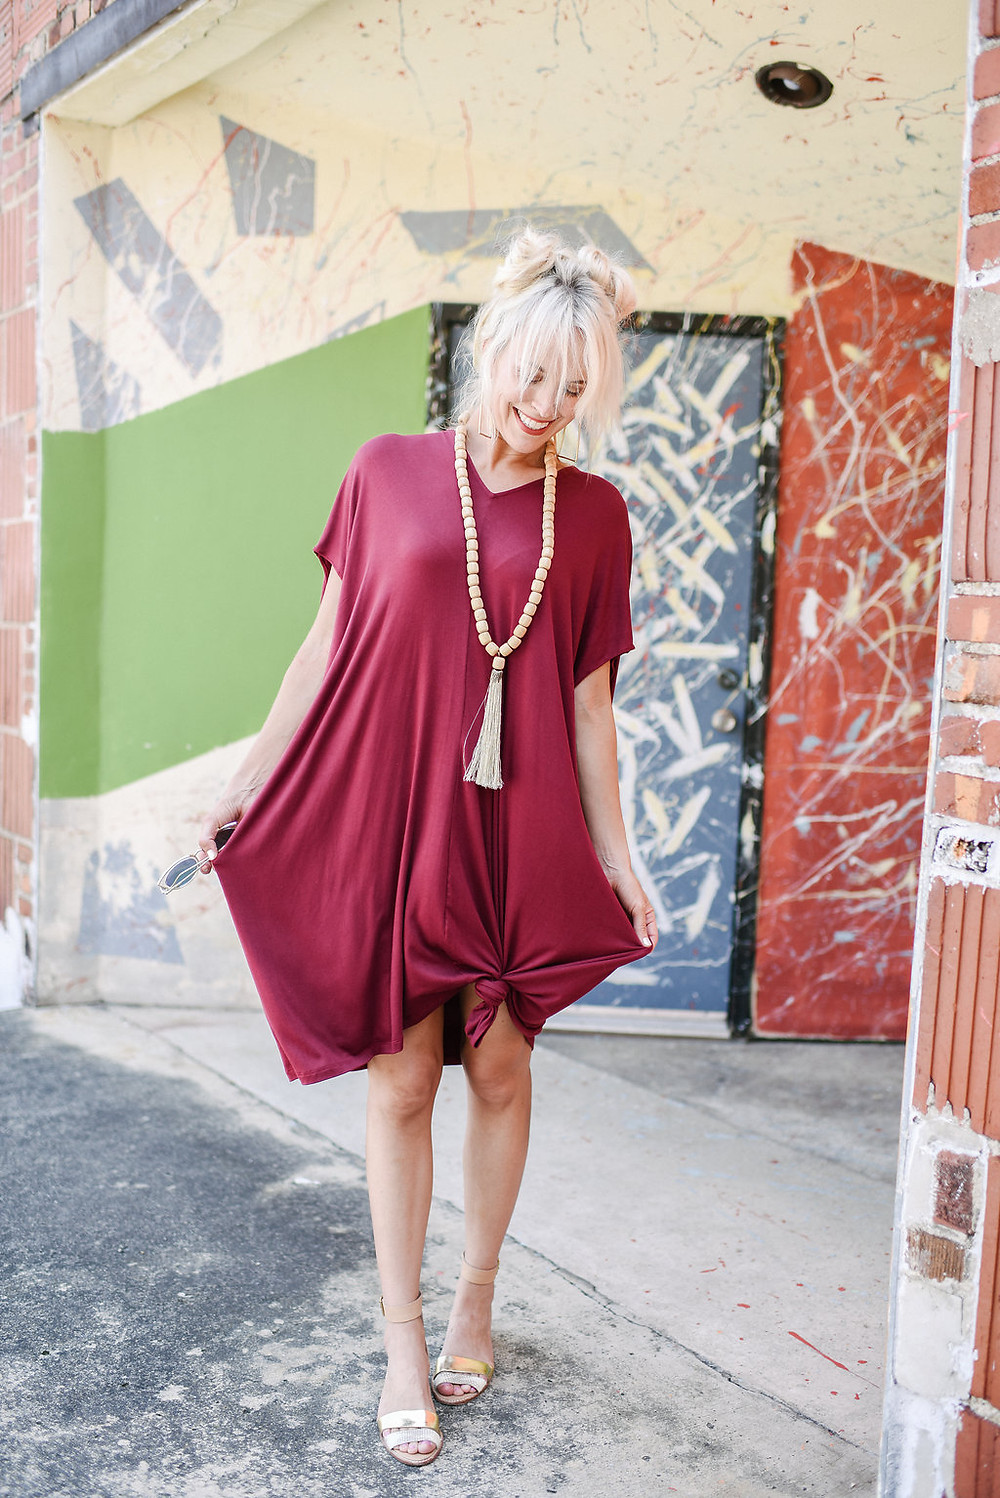 Brooke from The Tony Townie fashion/lifestyle blog wears Yana K burgundy tunic dress with wooden bead necklace and Loeffler Randall metallic sandals in downtown Asheville